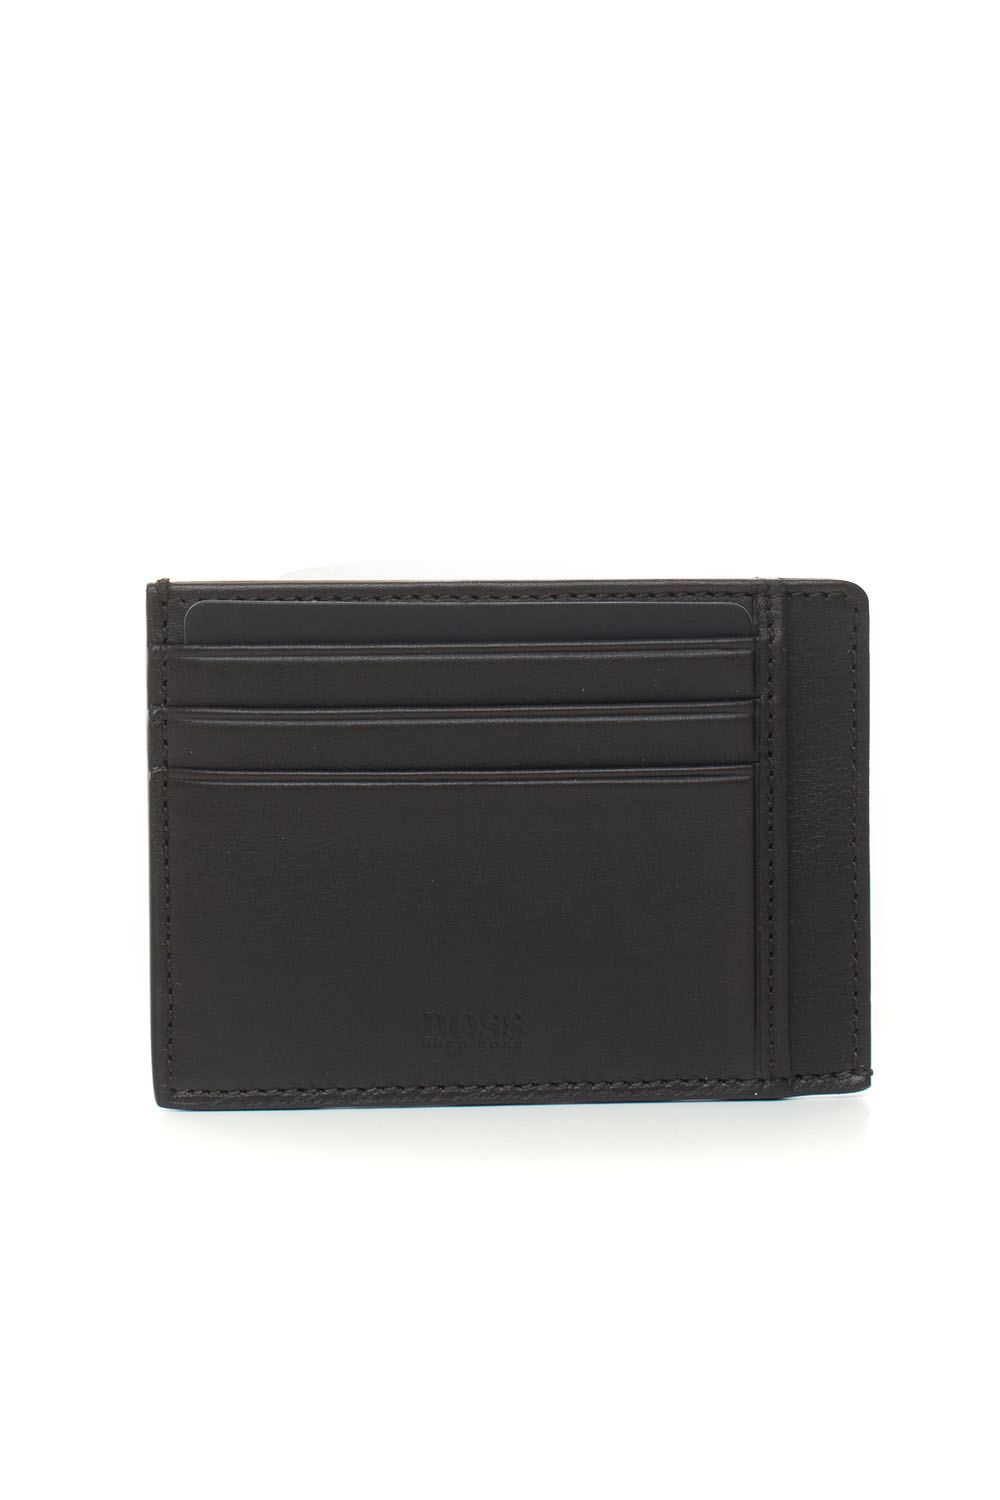 Hugo Boss Boss Credit Card Holder Brown Leather Man